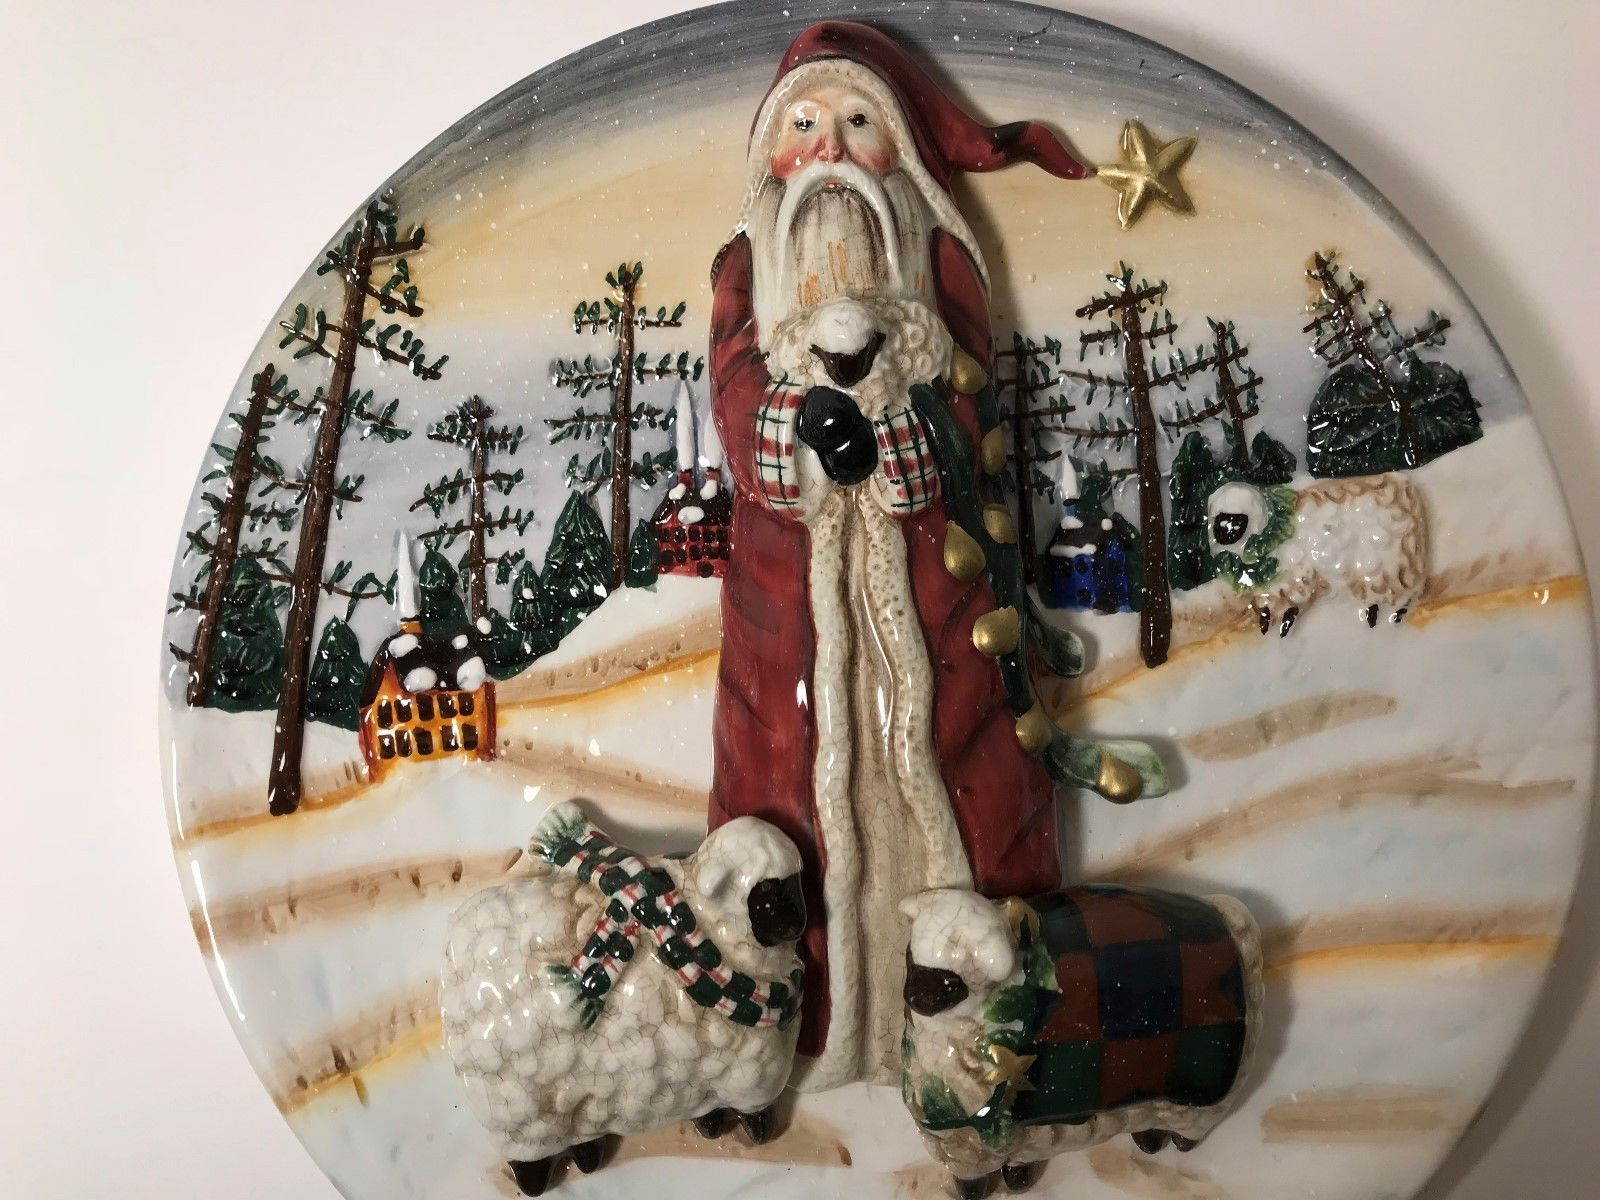 Decorative Christmas Plates For The Wall Decorative Christmas Plate Ganz Santa Cookies Plate Christmas